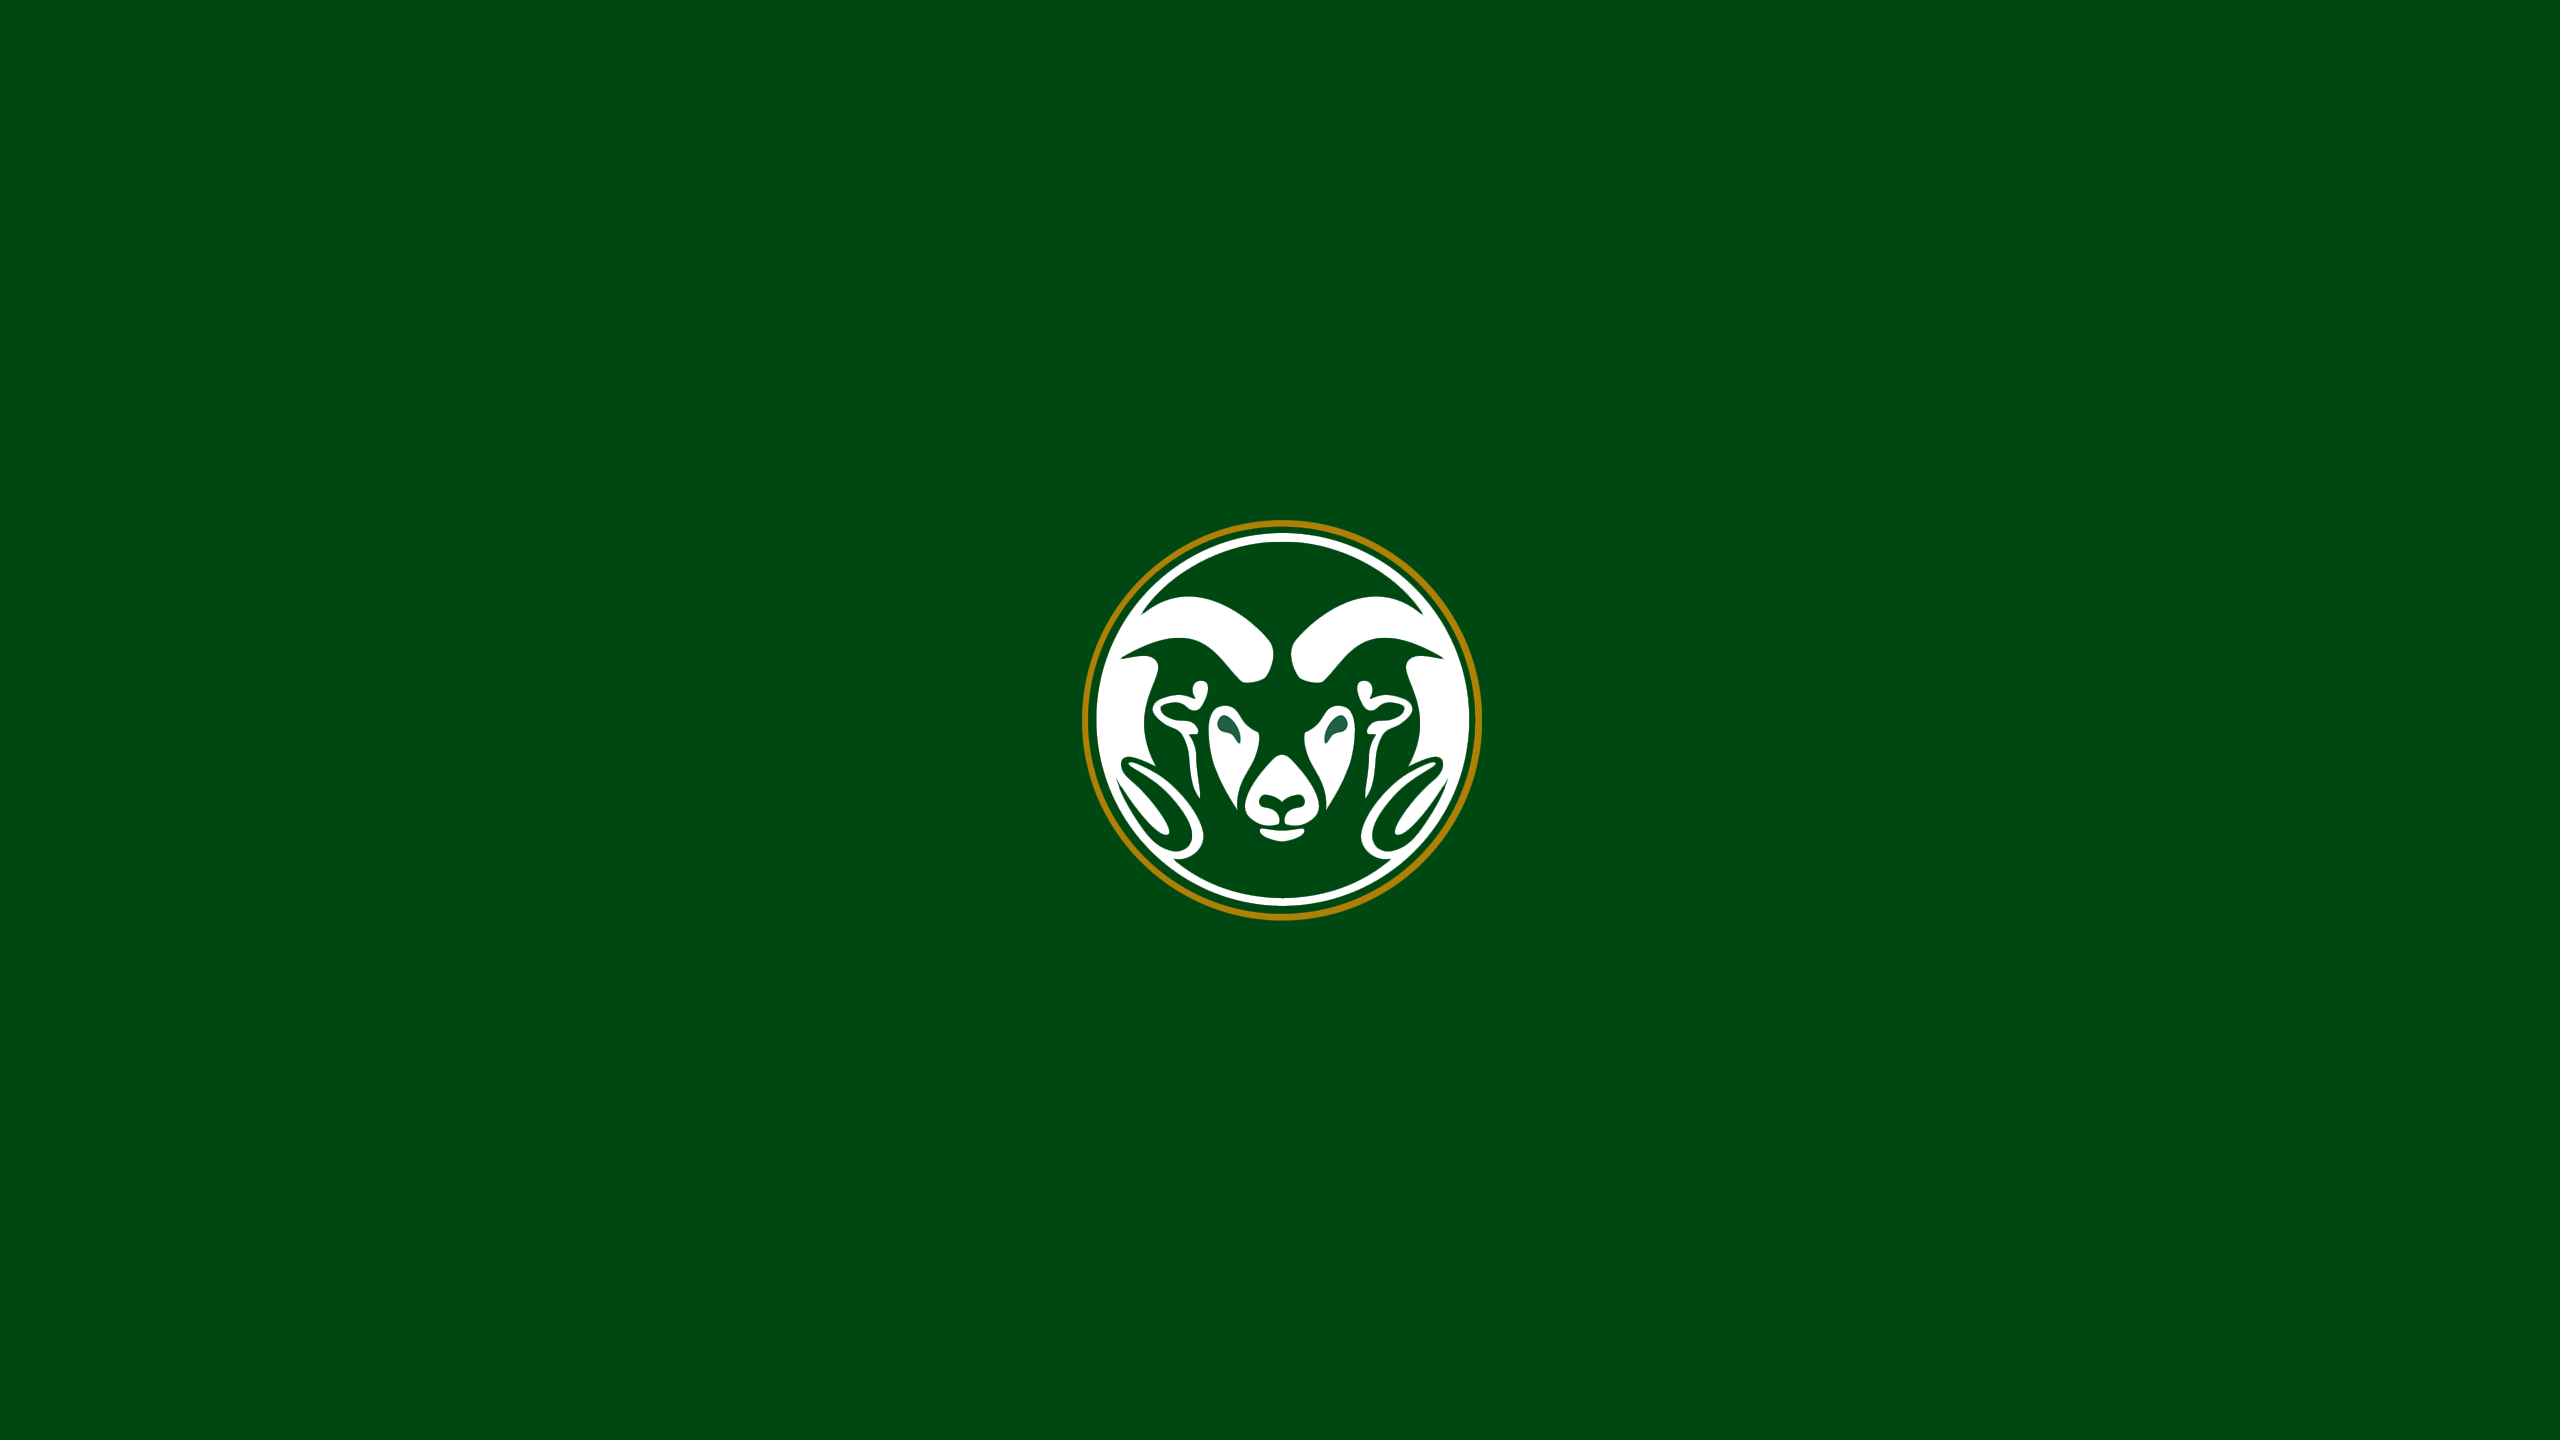 Colorado State University Rams